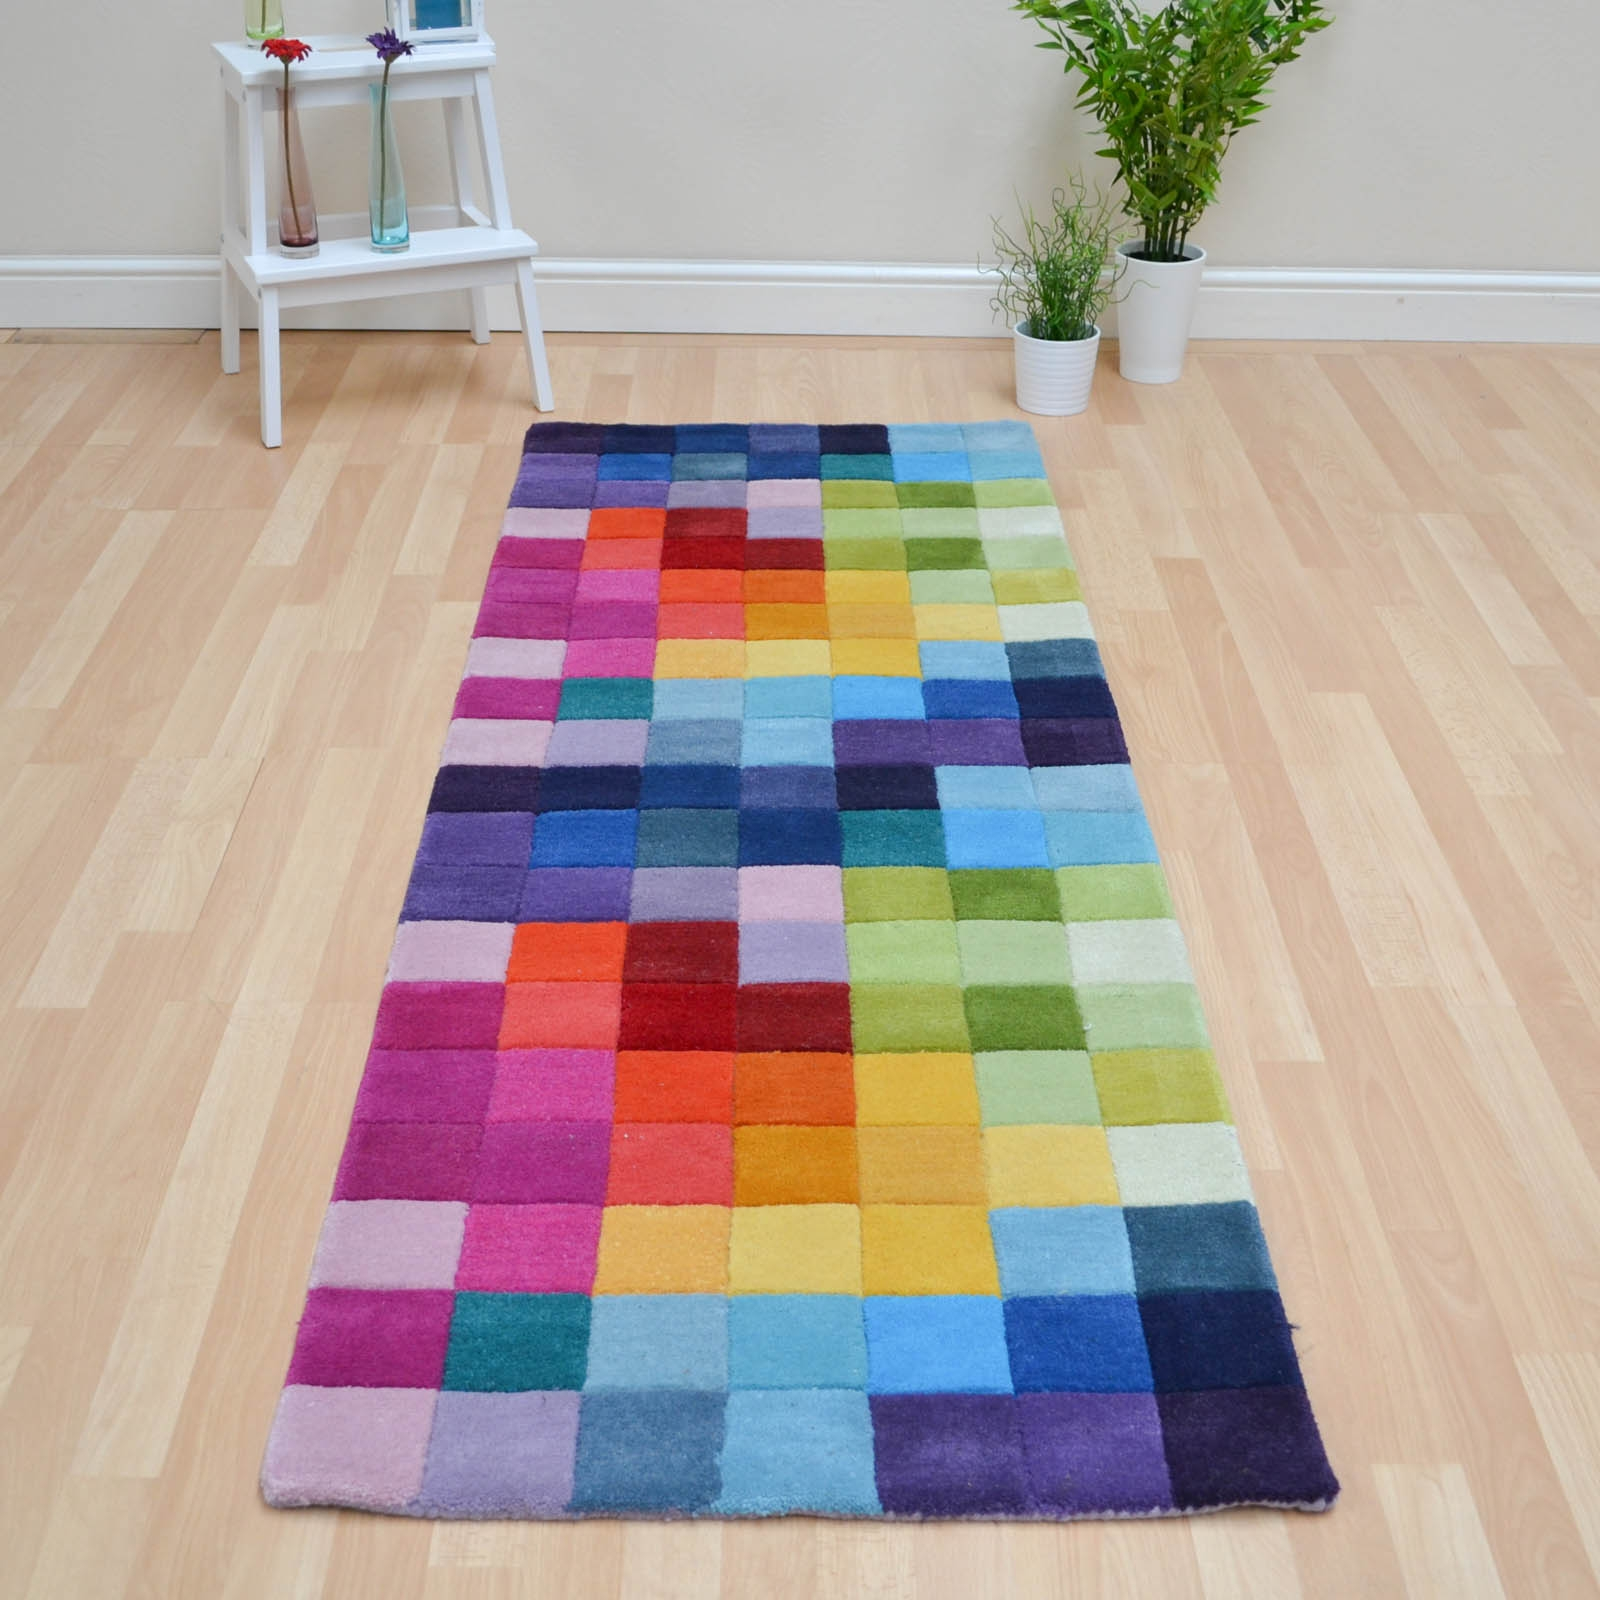 Funk Hallway Runners Multi Coloured Pure Wool Free Uk Delivery With Regard To Wool Runners Hallways (#14 of 20)